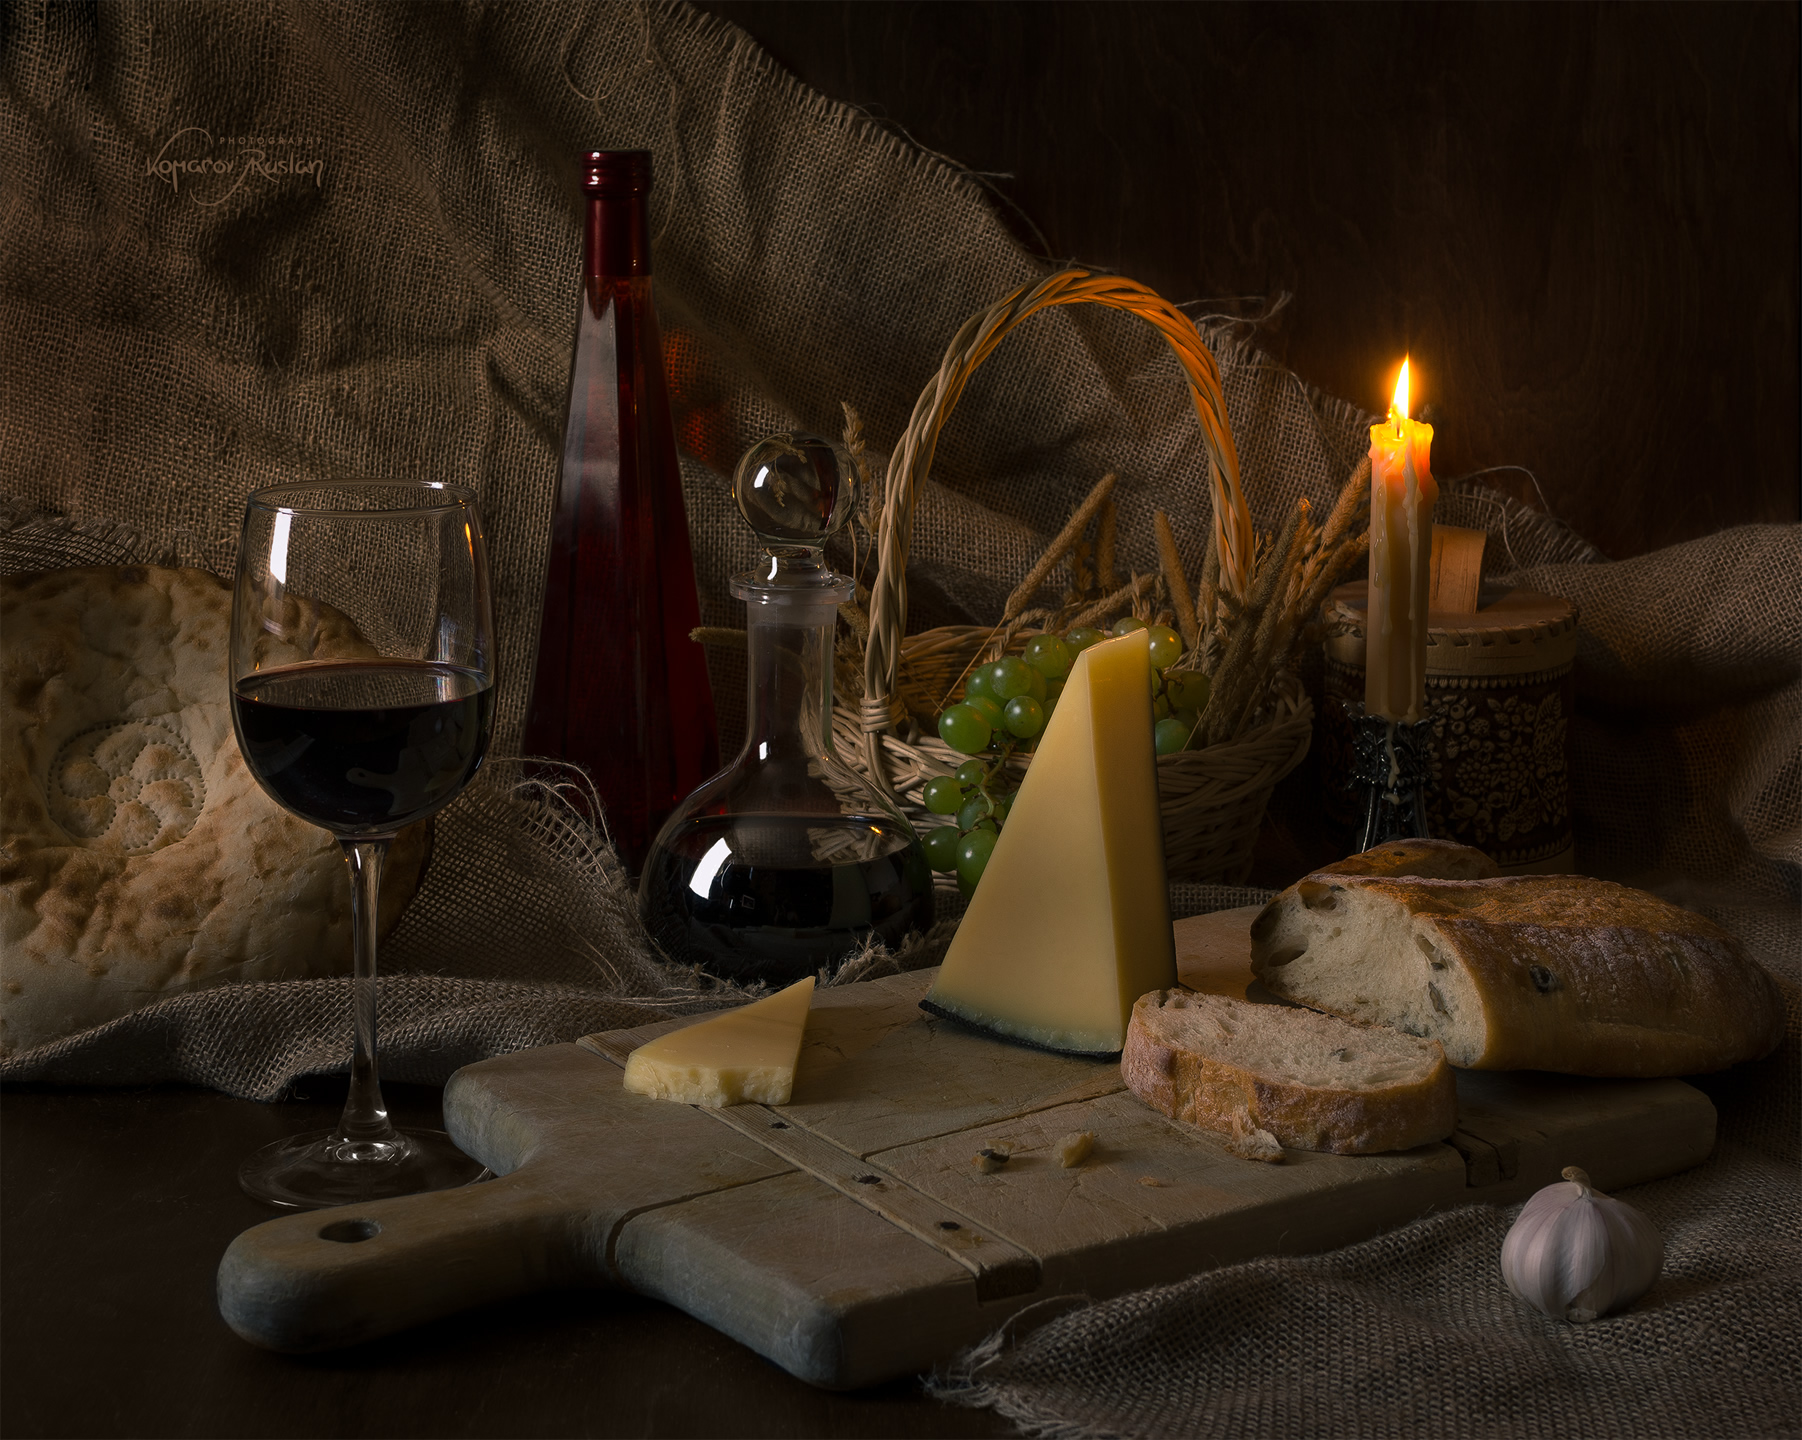 Candle Candlelight Extravagant Lavish Dining Table Tablecloth Still Life Wine Cheese Bread Natural Light Darkbackground Rustic Glass